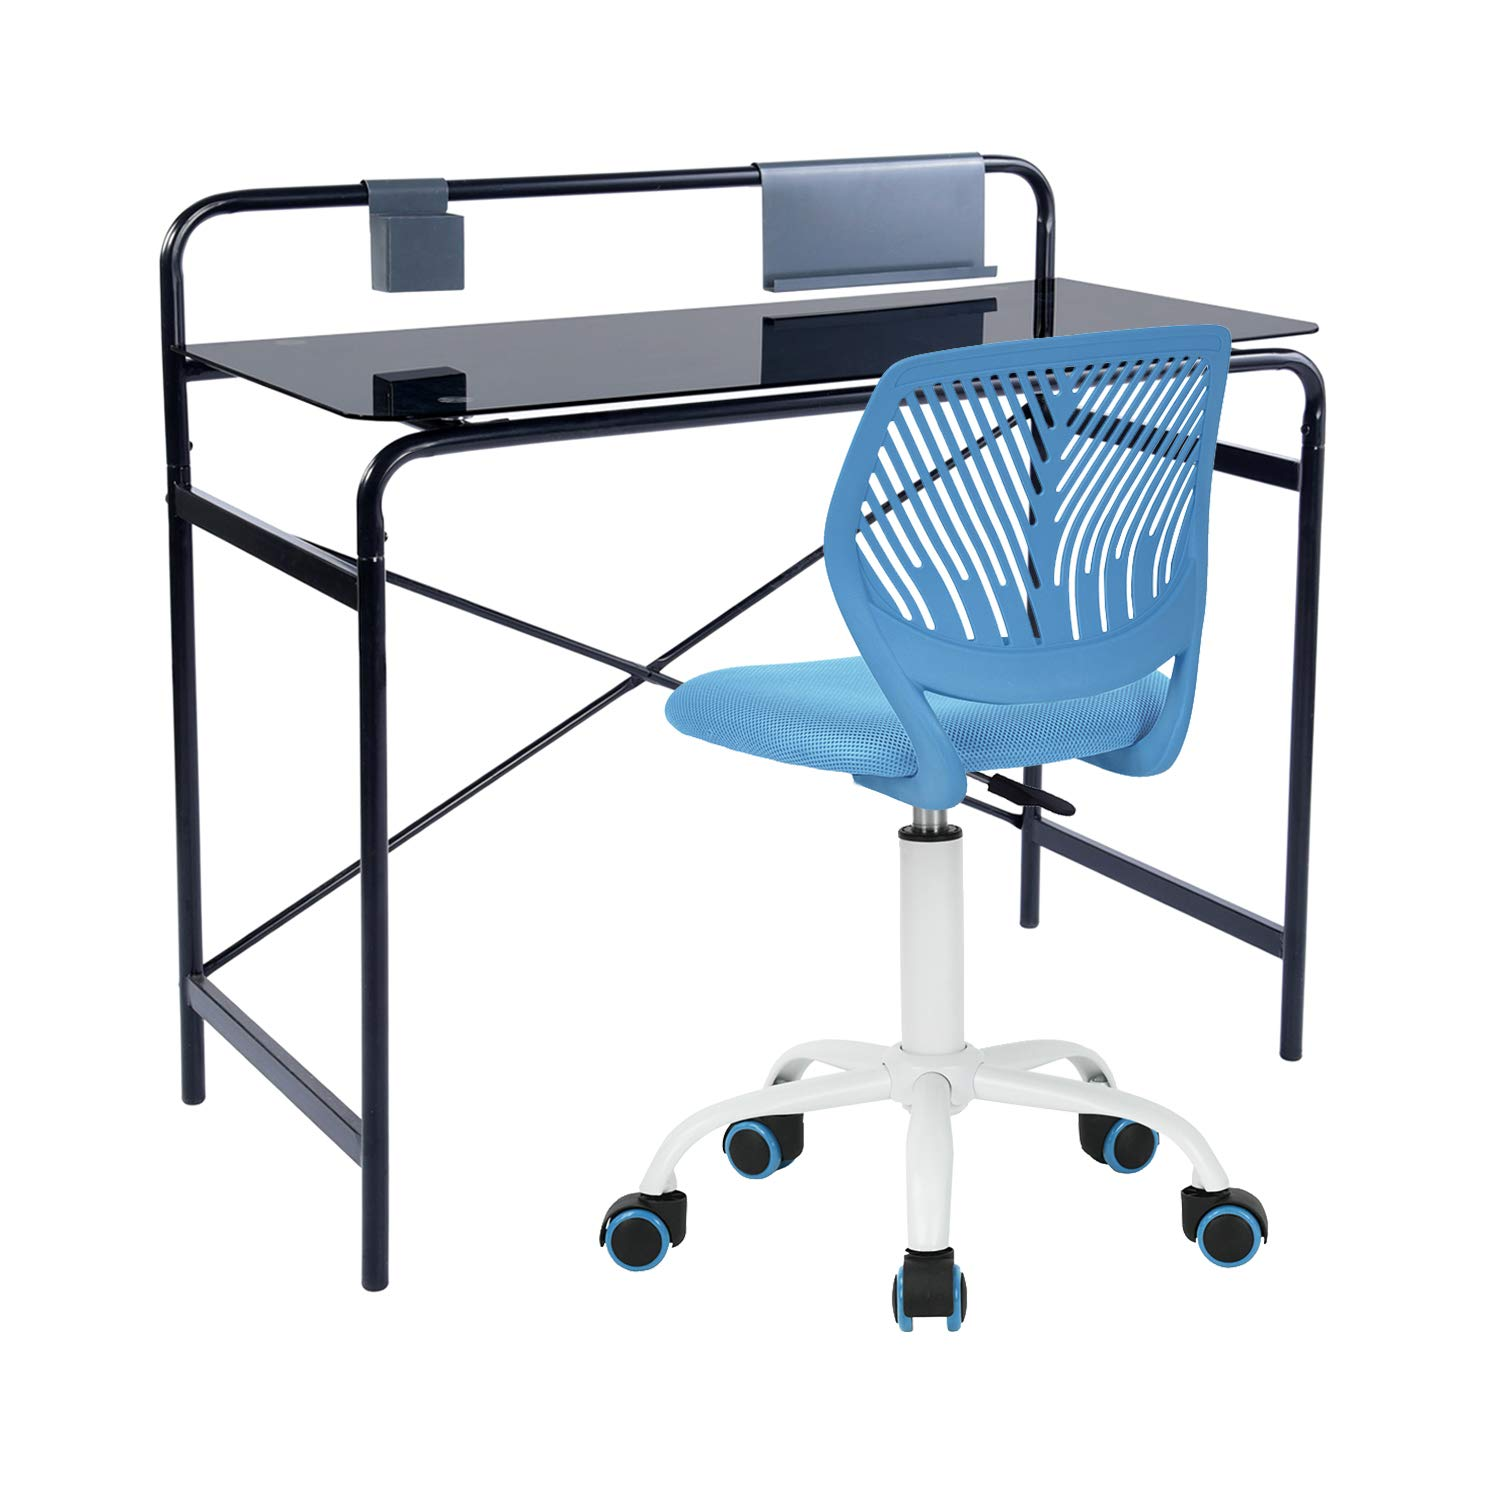 Homy Casa Set of 2 Student Desk Chair Set Study Desk Chair for Kids Back to School Furniture (Blue) by Homy Casa Inc